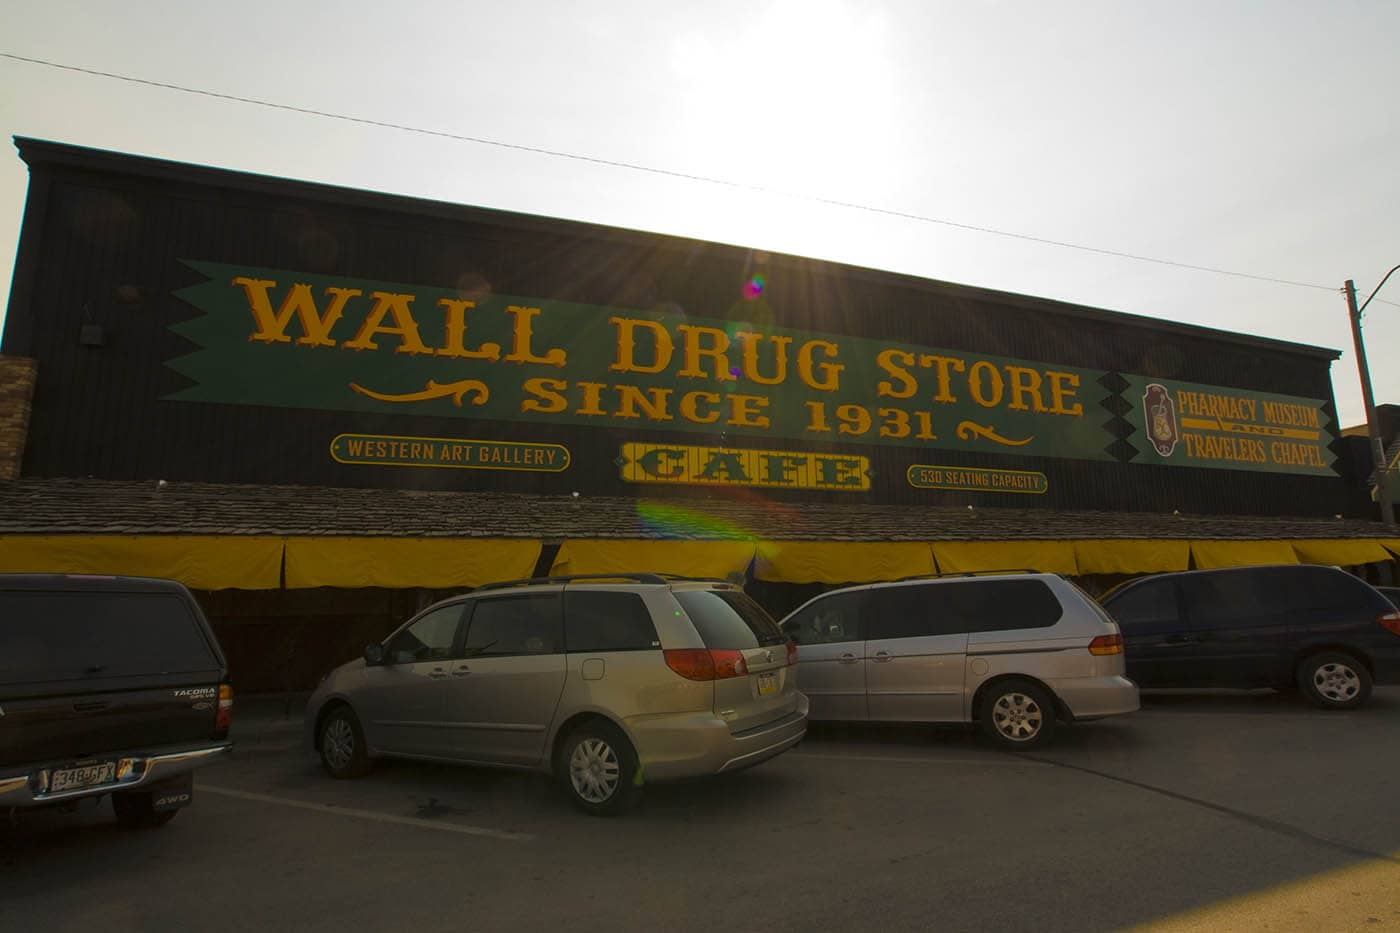 Wall Drug Store in Wall, South Dakota